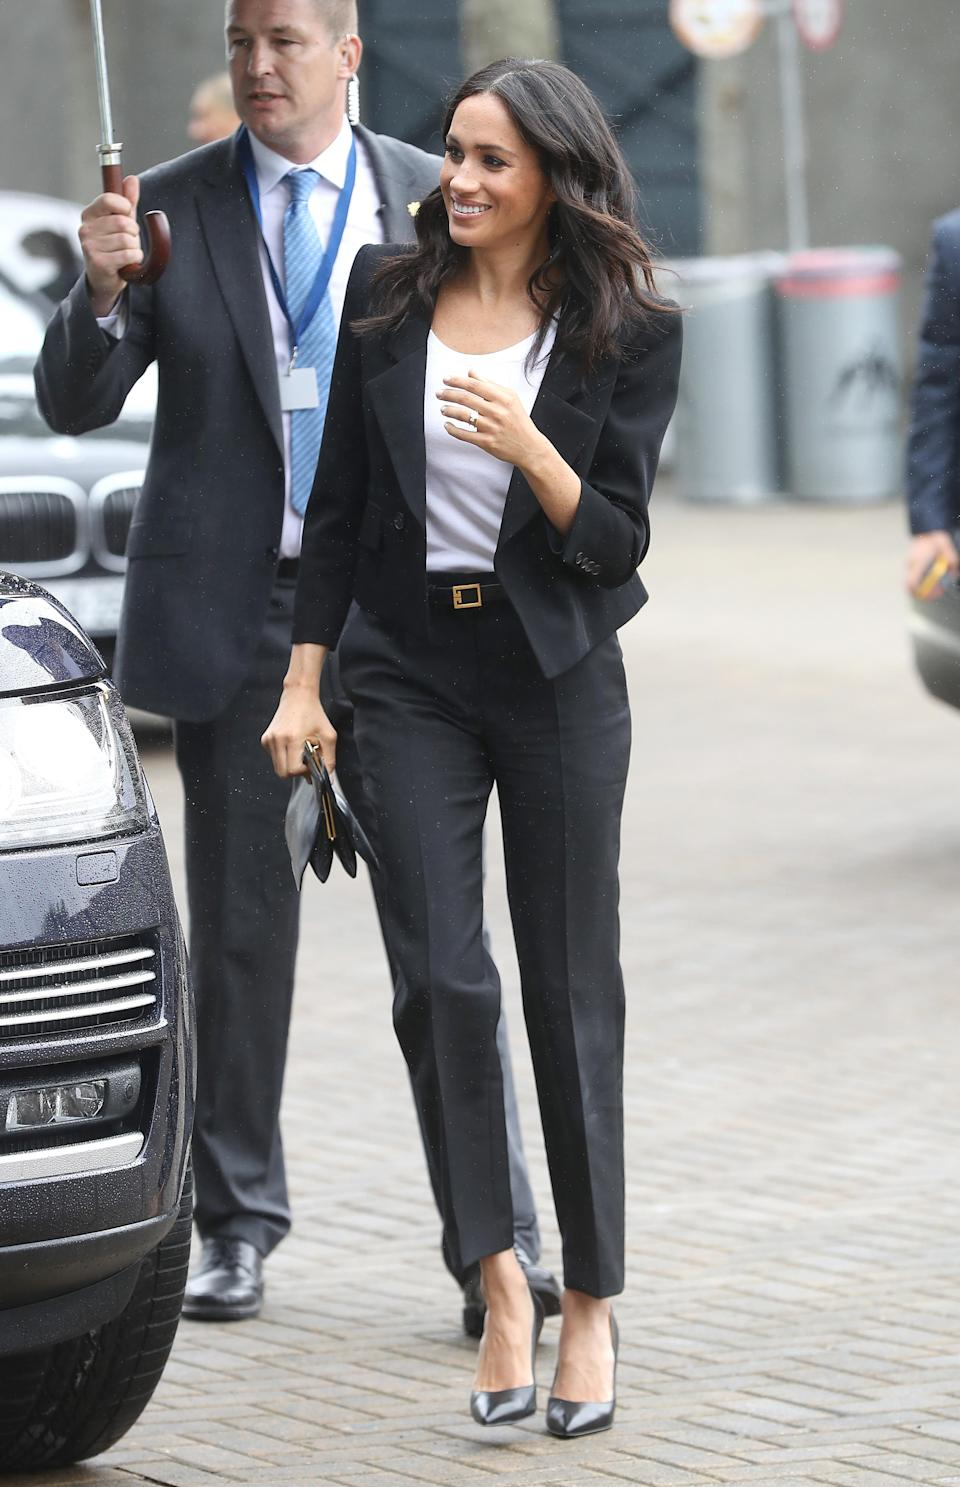 <p>For a visit to Croke Park sporting grounds, Meghan changed into her second outfit of the day, a bespoke Givenchy trouser suit which she paired with Sarah flint heels. <em>[Photo: Getty]</em> </p>